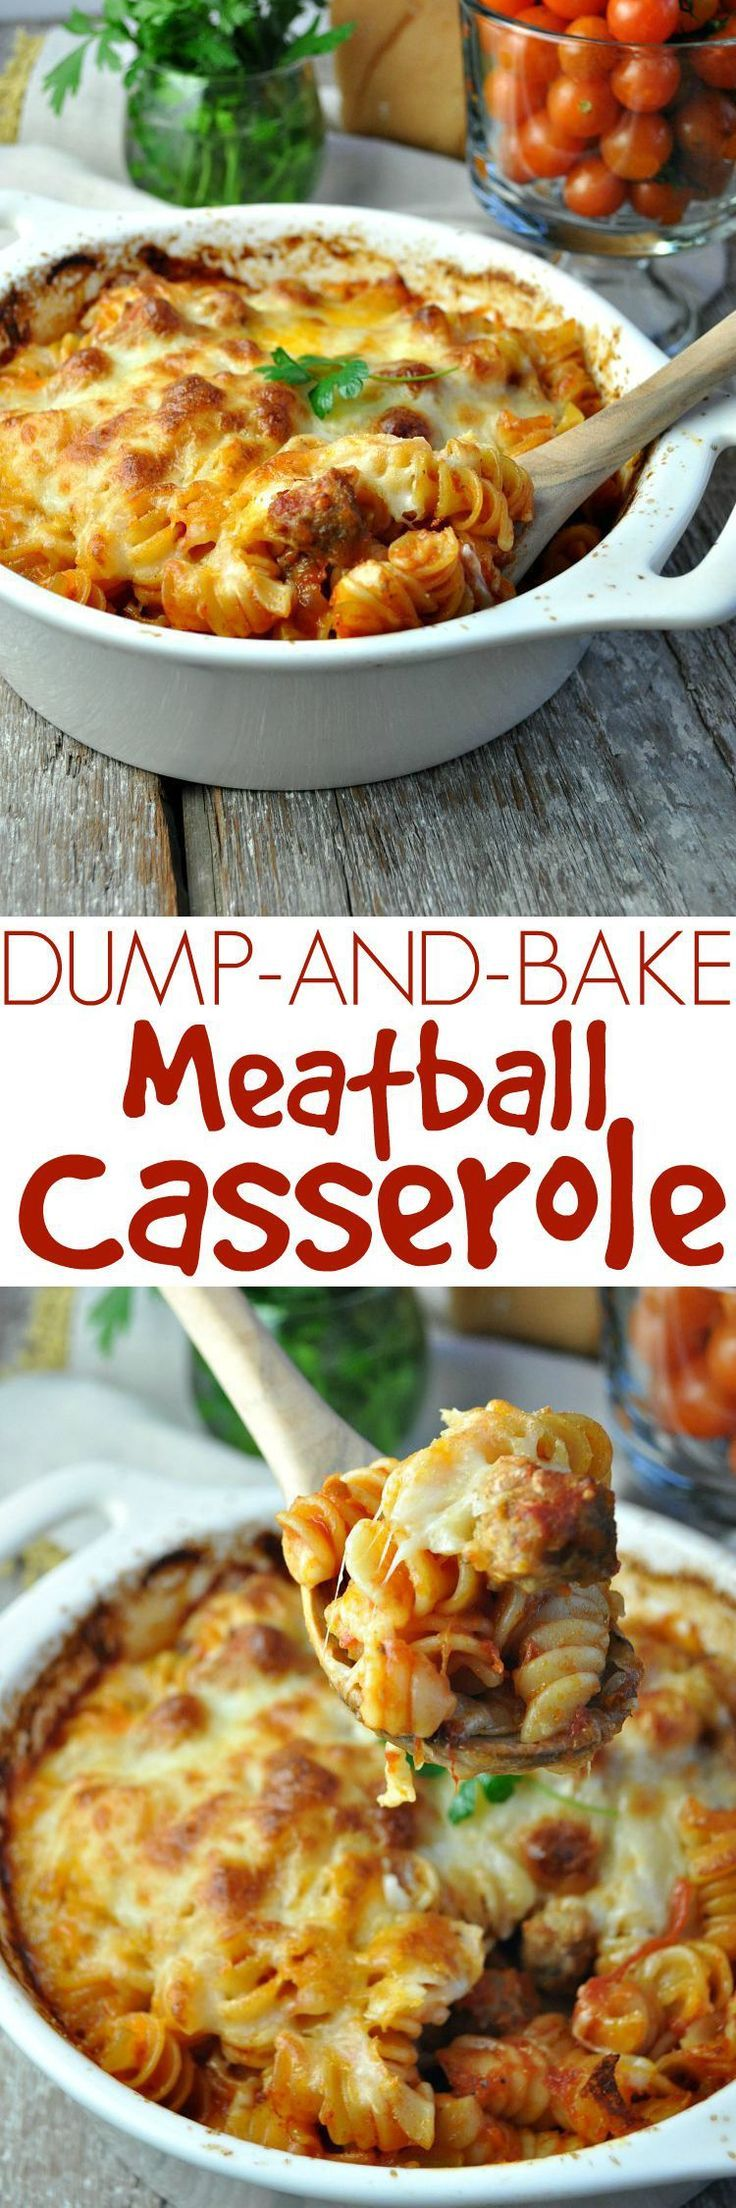 You don't even have to boil the pasta with this easy Dump-and-Bake Meatball Casserole!  Be sure to use a 9 by 13 pan and cover tightly